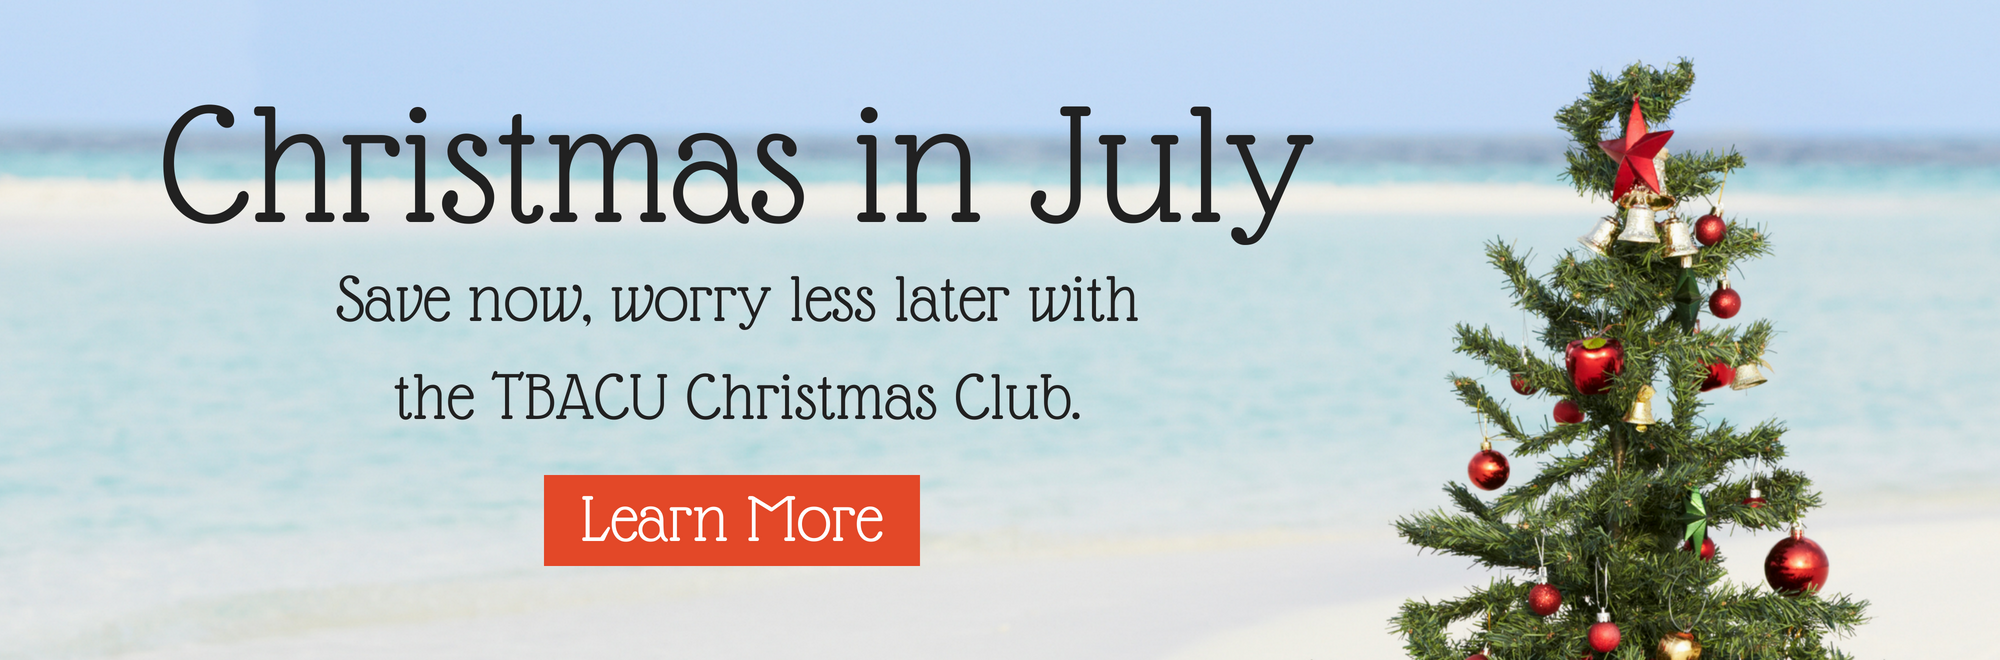 Christmas in July - Learn More